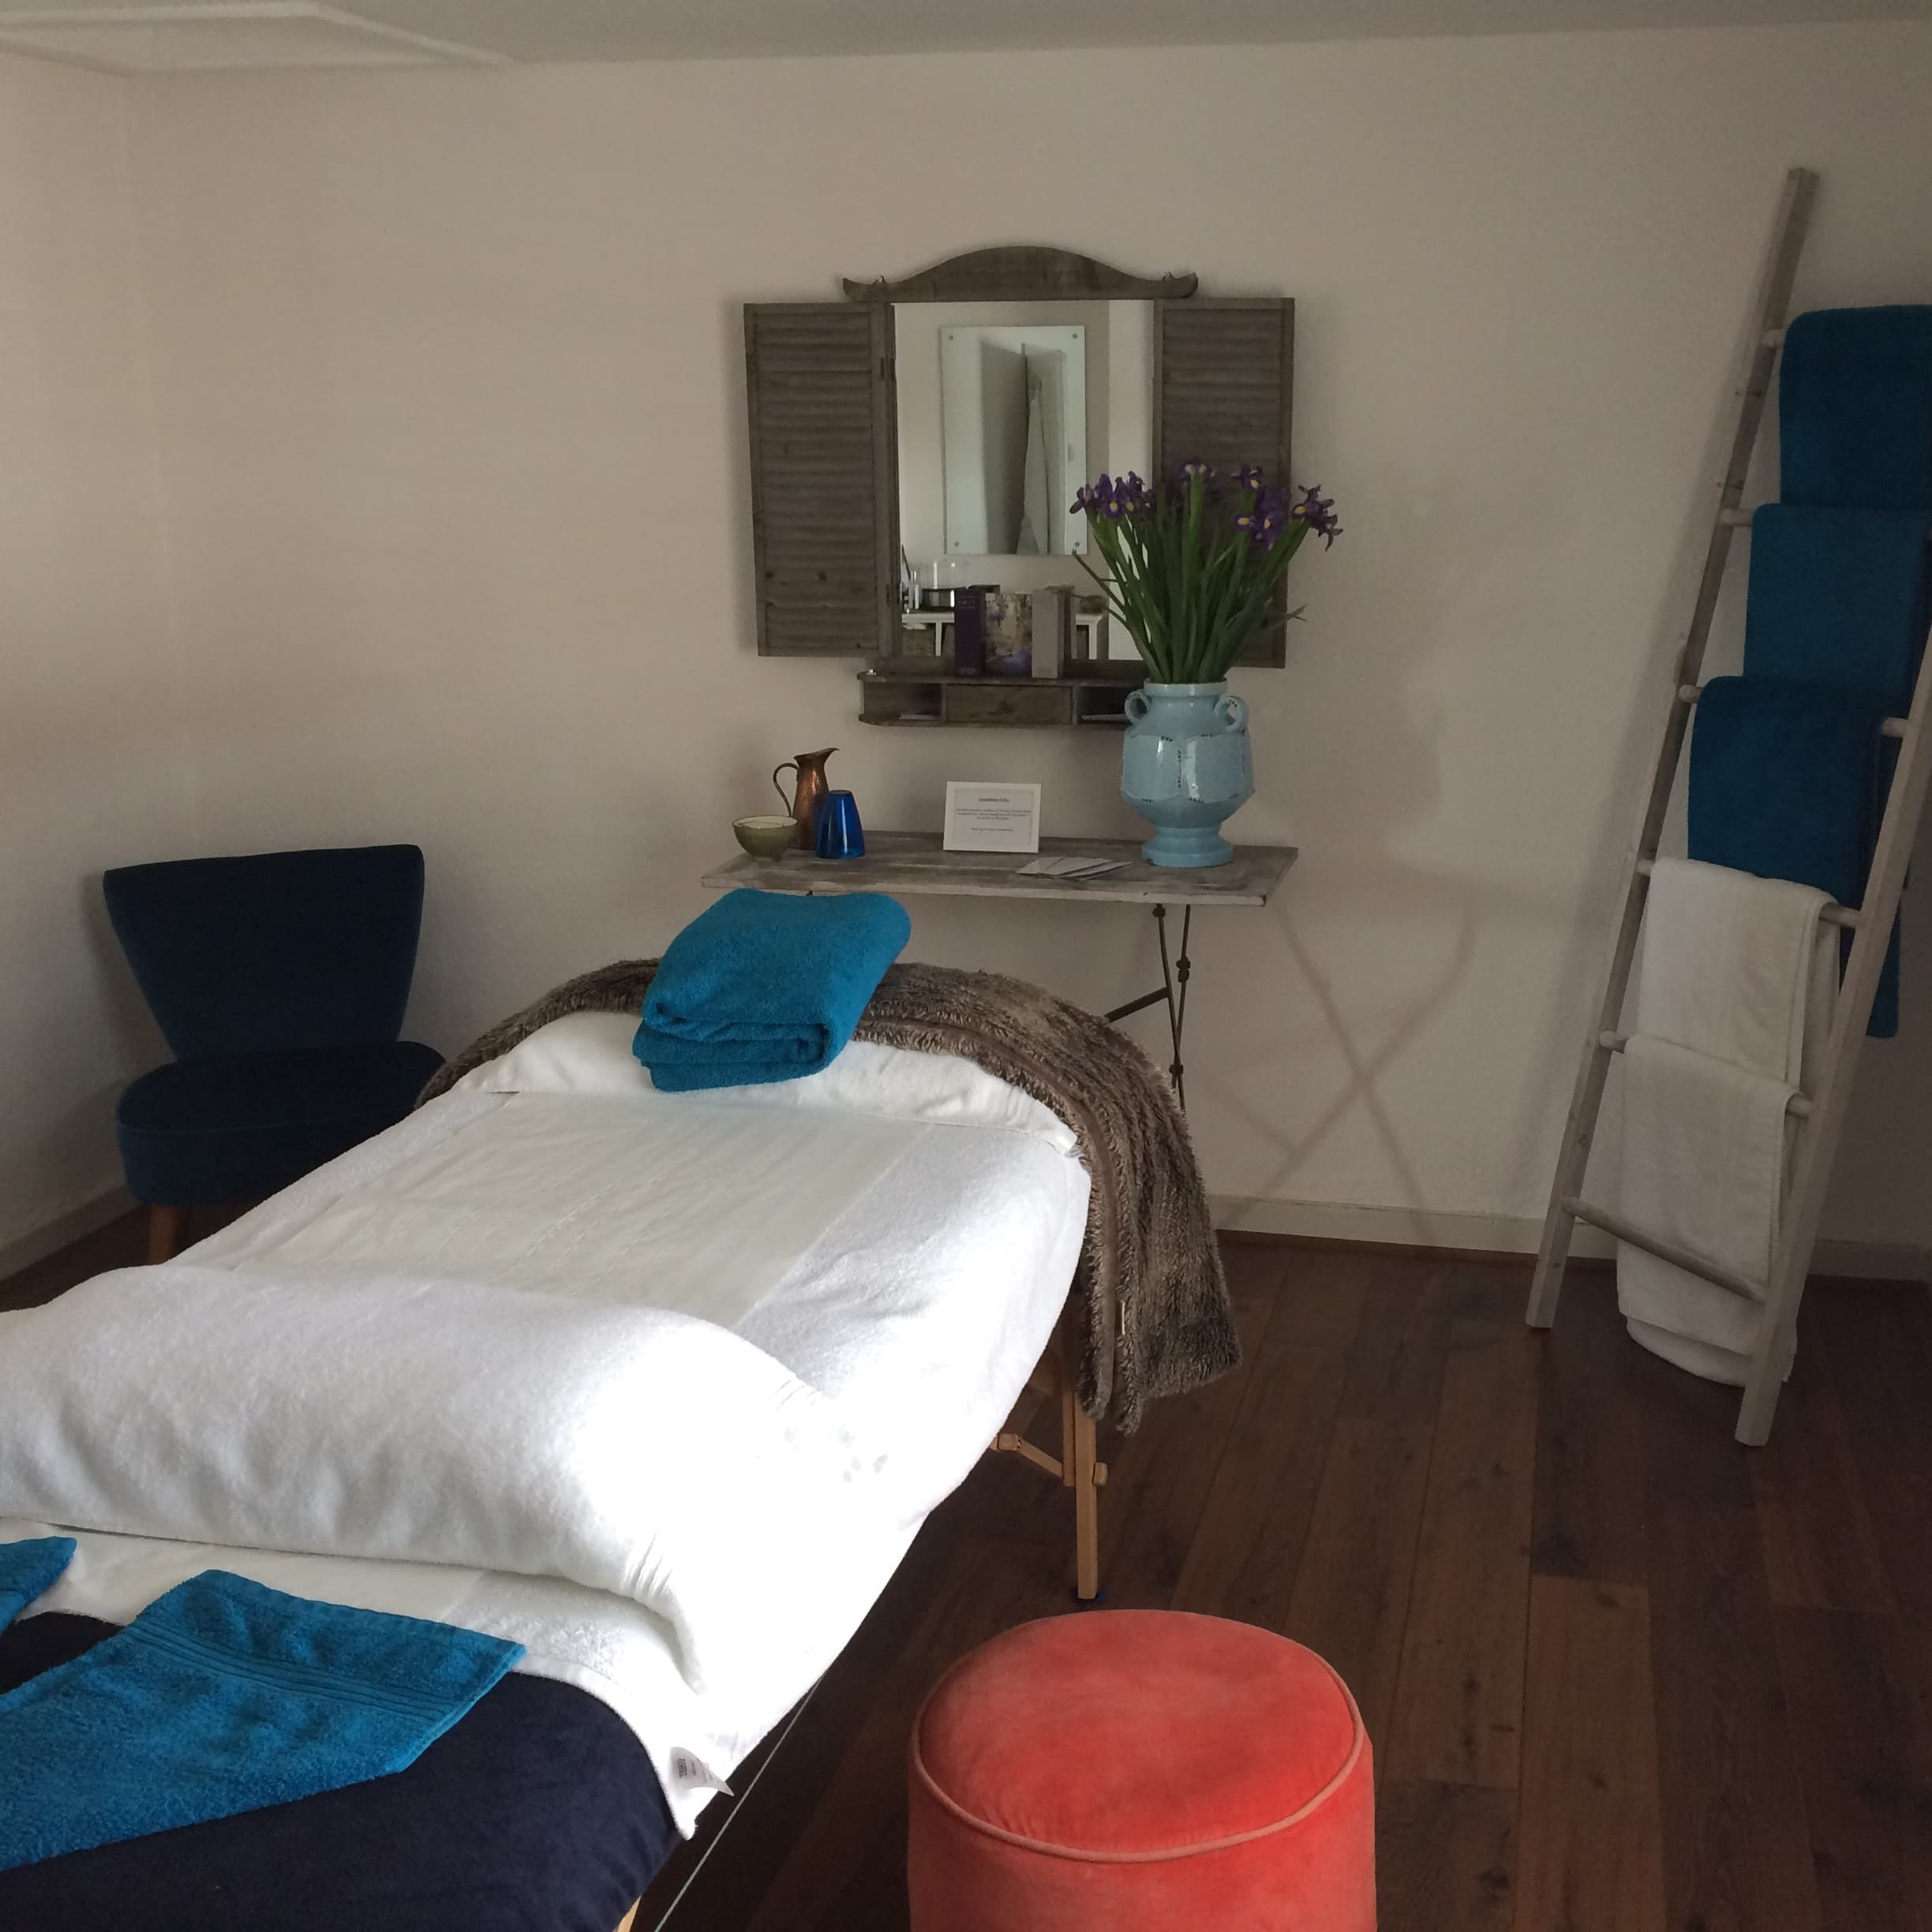 massage bed with white sheets blue towels towels hanging on ladder mirror on wall with shutters